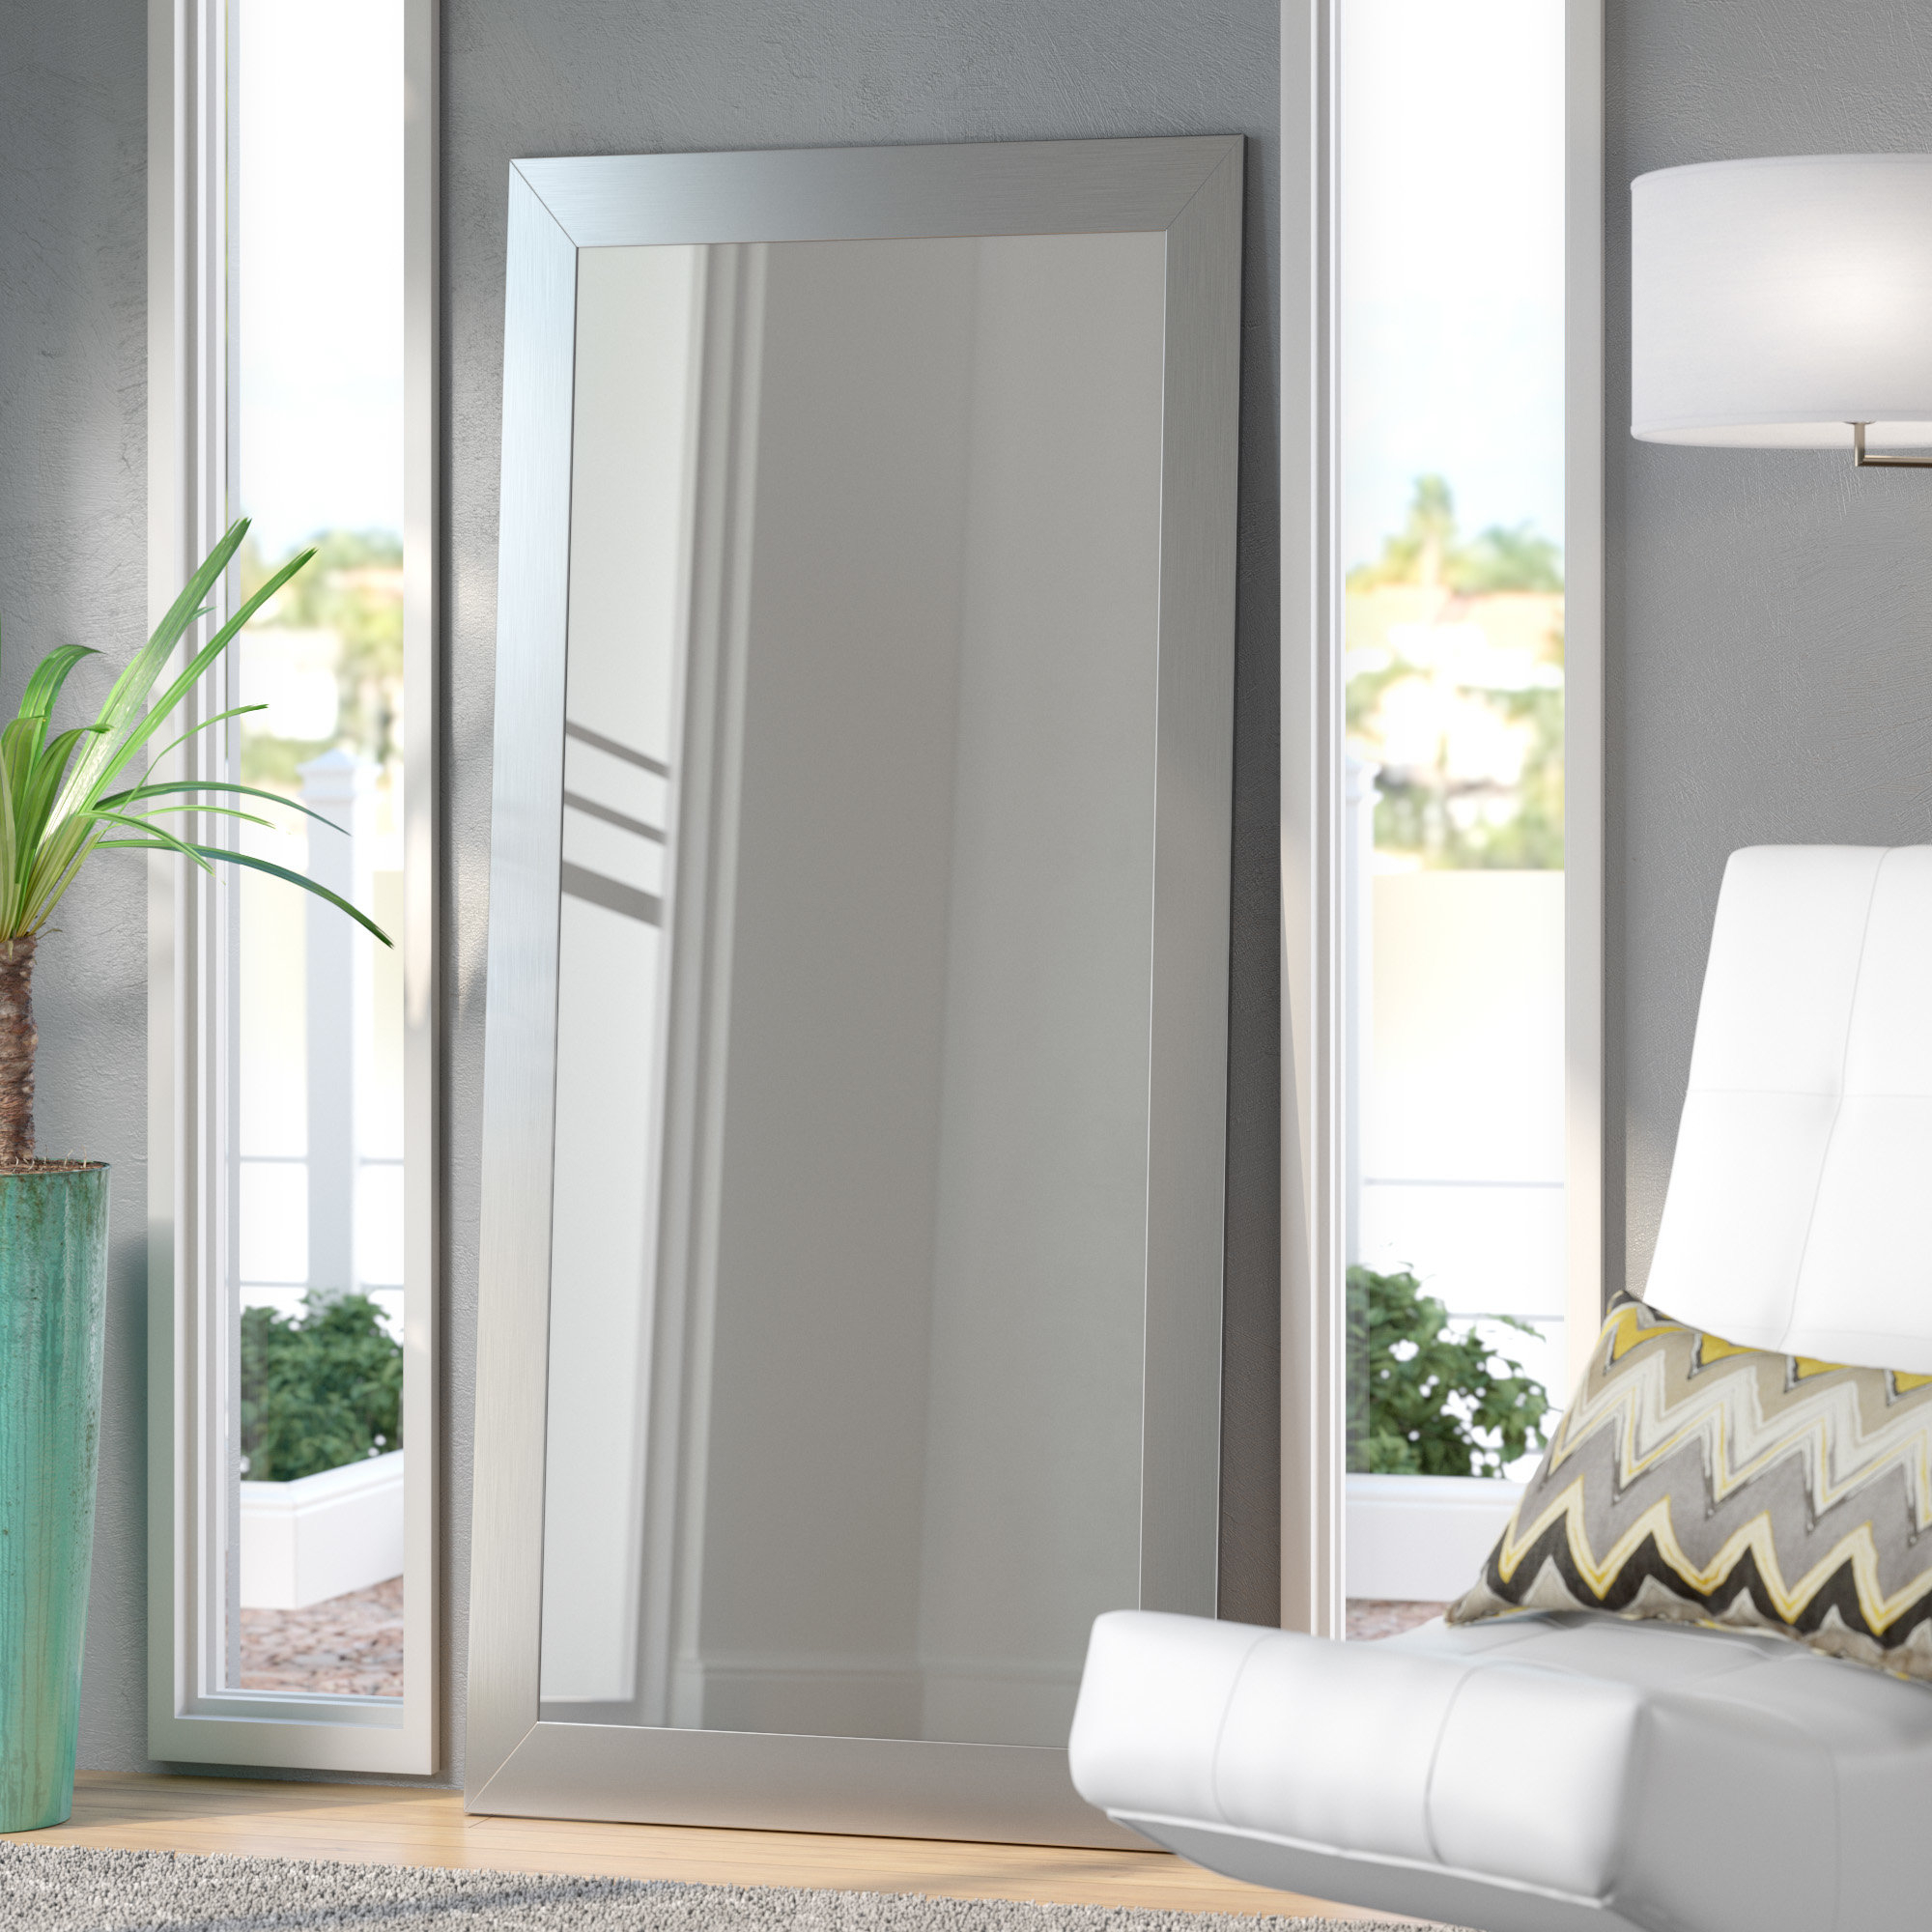 Brushed Nickel Aluminum Full Body Modern And Contemporary Wall Mirror Intended For Well Liked Modern Full Length Wall Mirrors (View 3 of 20)